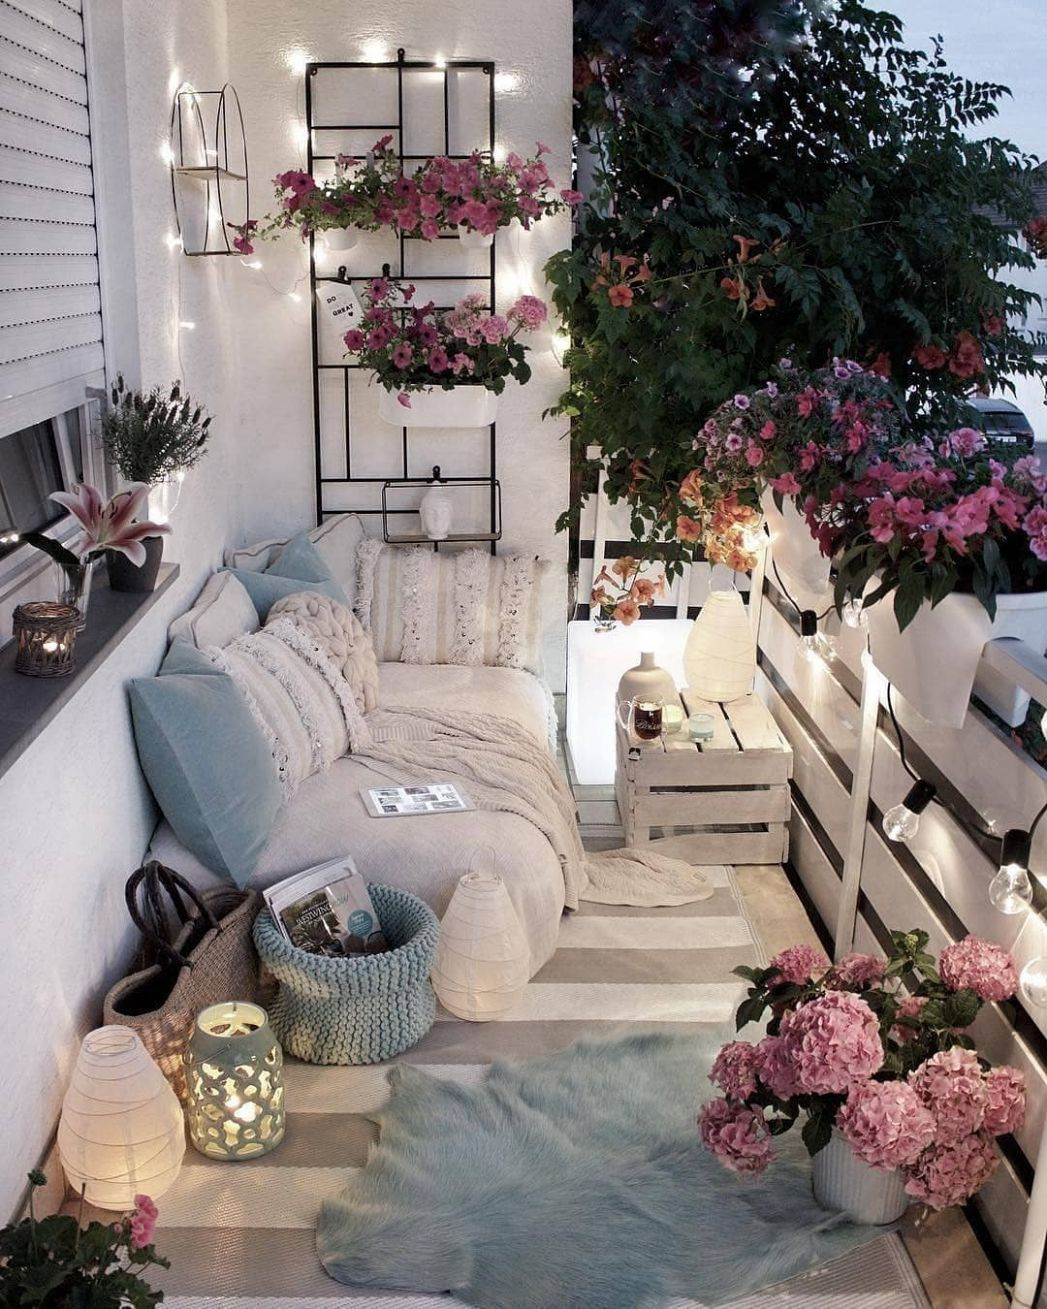 The Best Decorated Small Outdoor Balconies on Pinterest in 12 ..